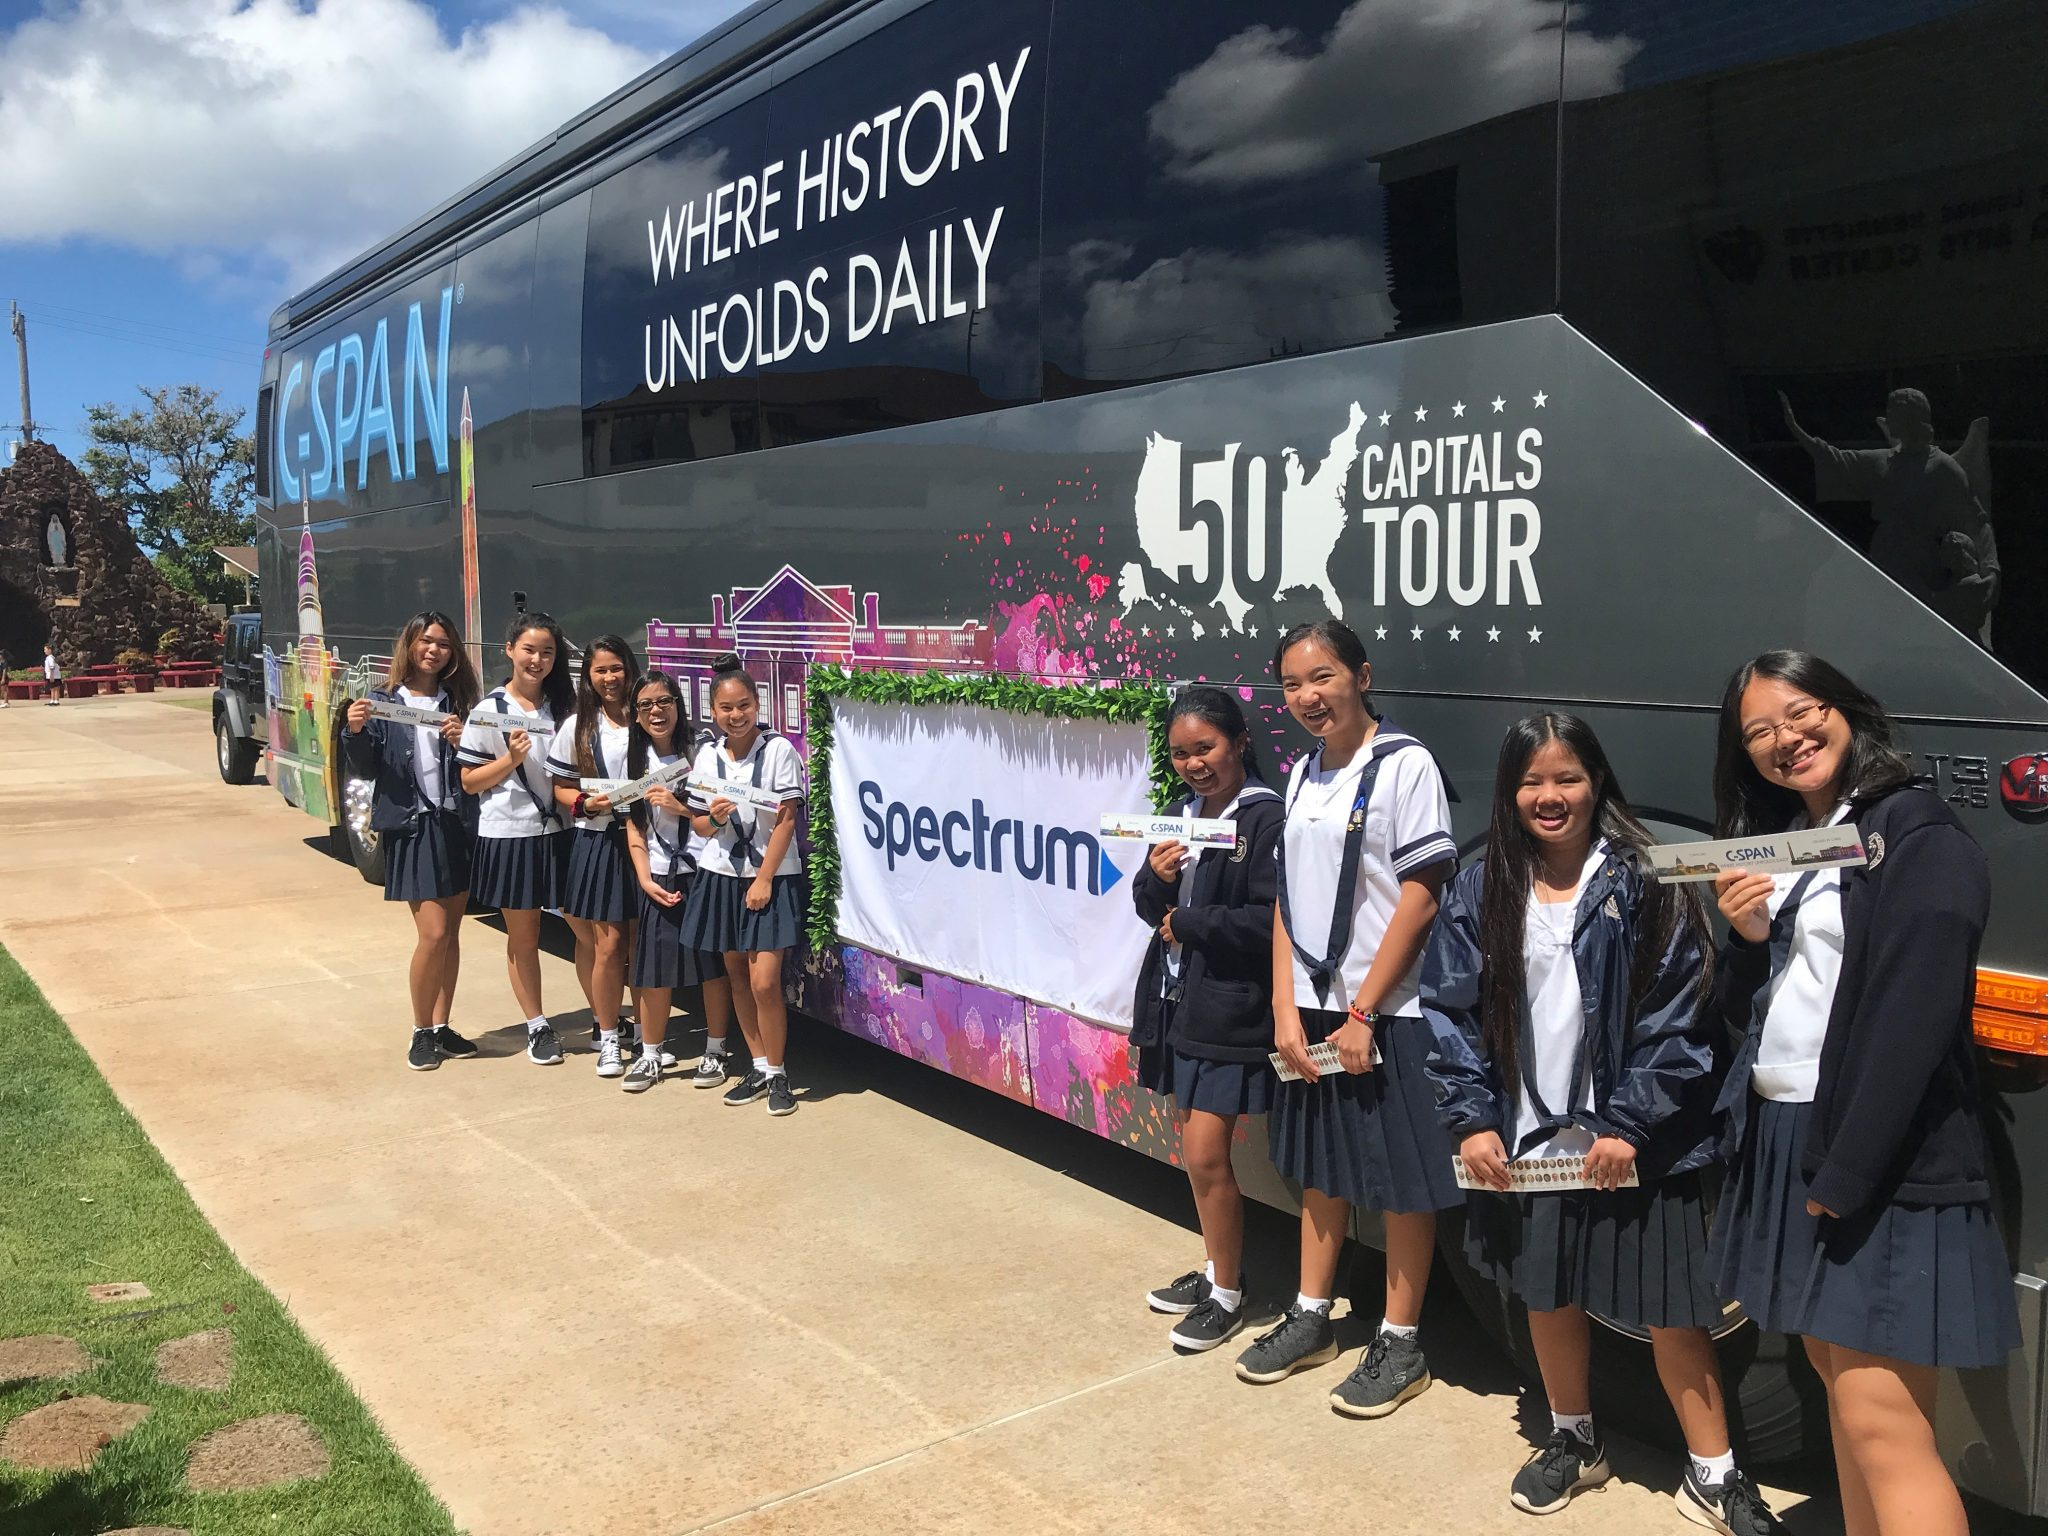 The C-SPAN Bus in Hawaii with Charter as part of the 50 Capitals Tour.